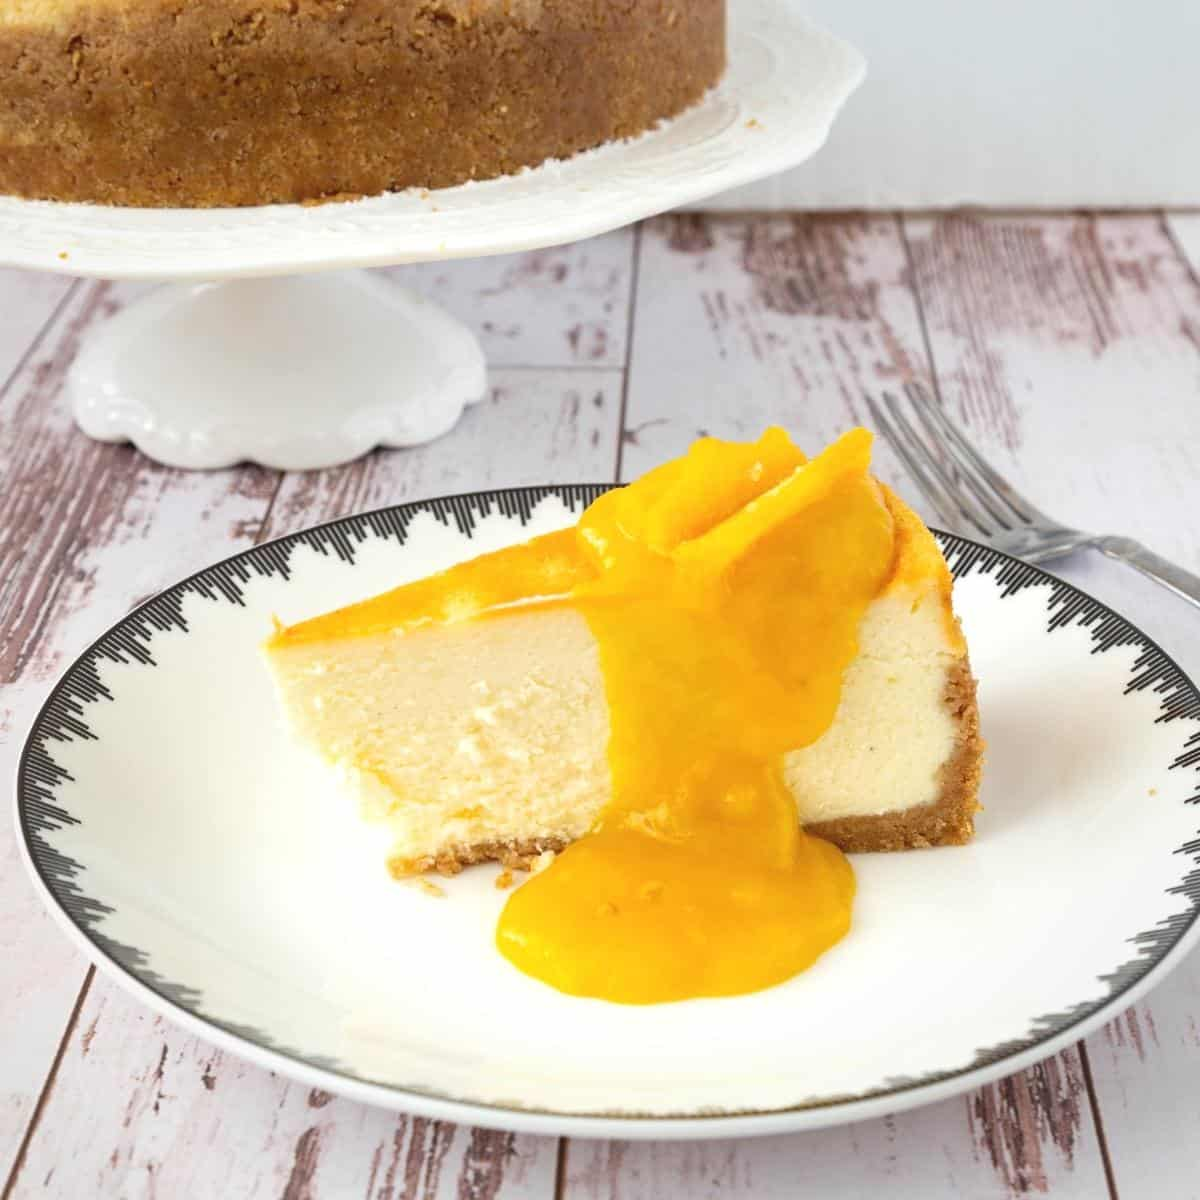 A slice of cheesecake with mango filling.